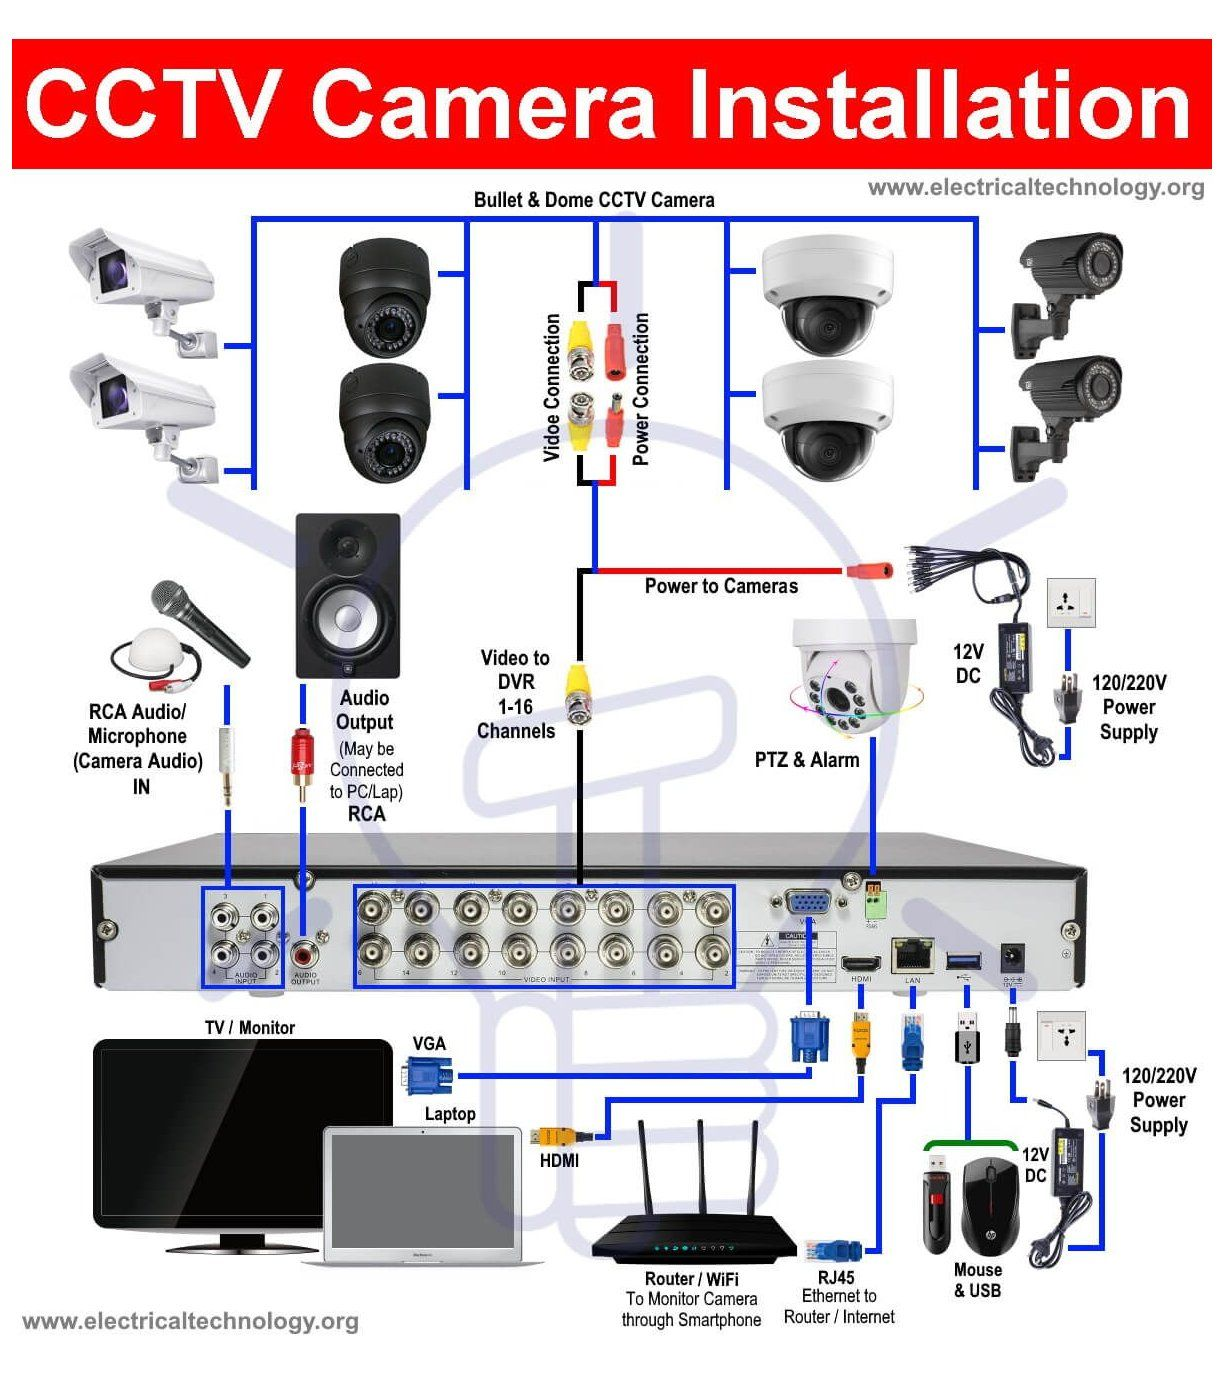 How To Install A Cctv Camera Cctv Camera Installation With Dvr Cctv Camera Cctvcamera Cct Cctv Camera Installation Cctv Camera Security Camera Installation